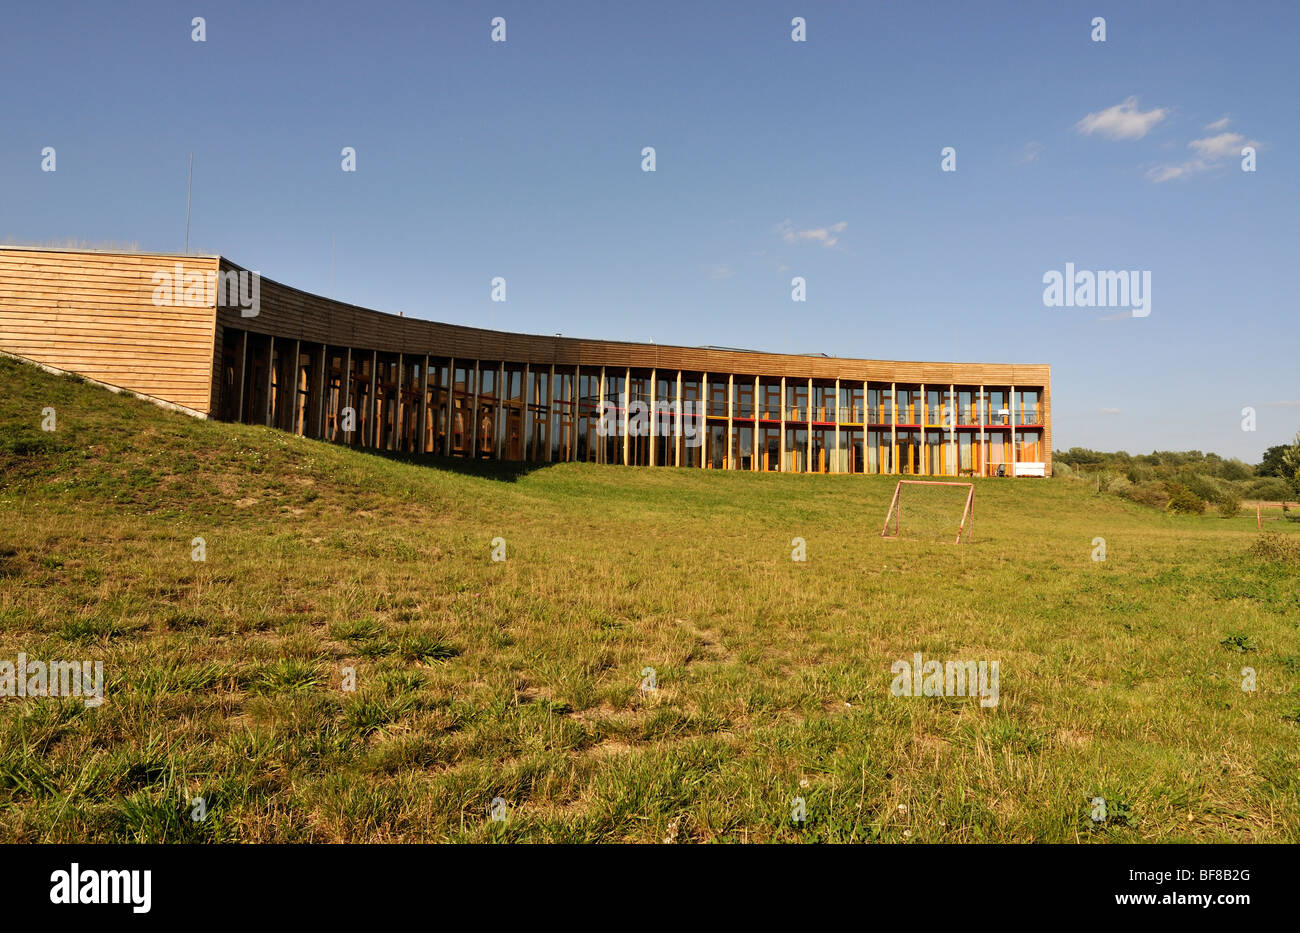 Low-energy Sustainable Building of Slunakov Center for Ecological and Educational Activities, Horka near Olomouc - Stock Image